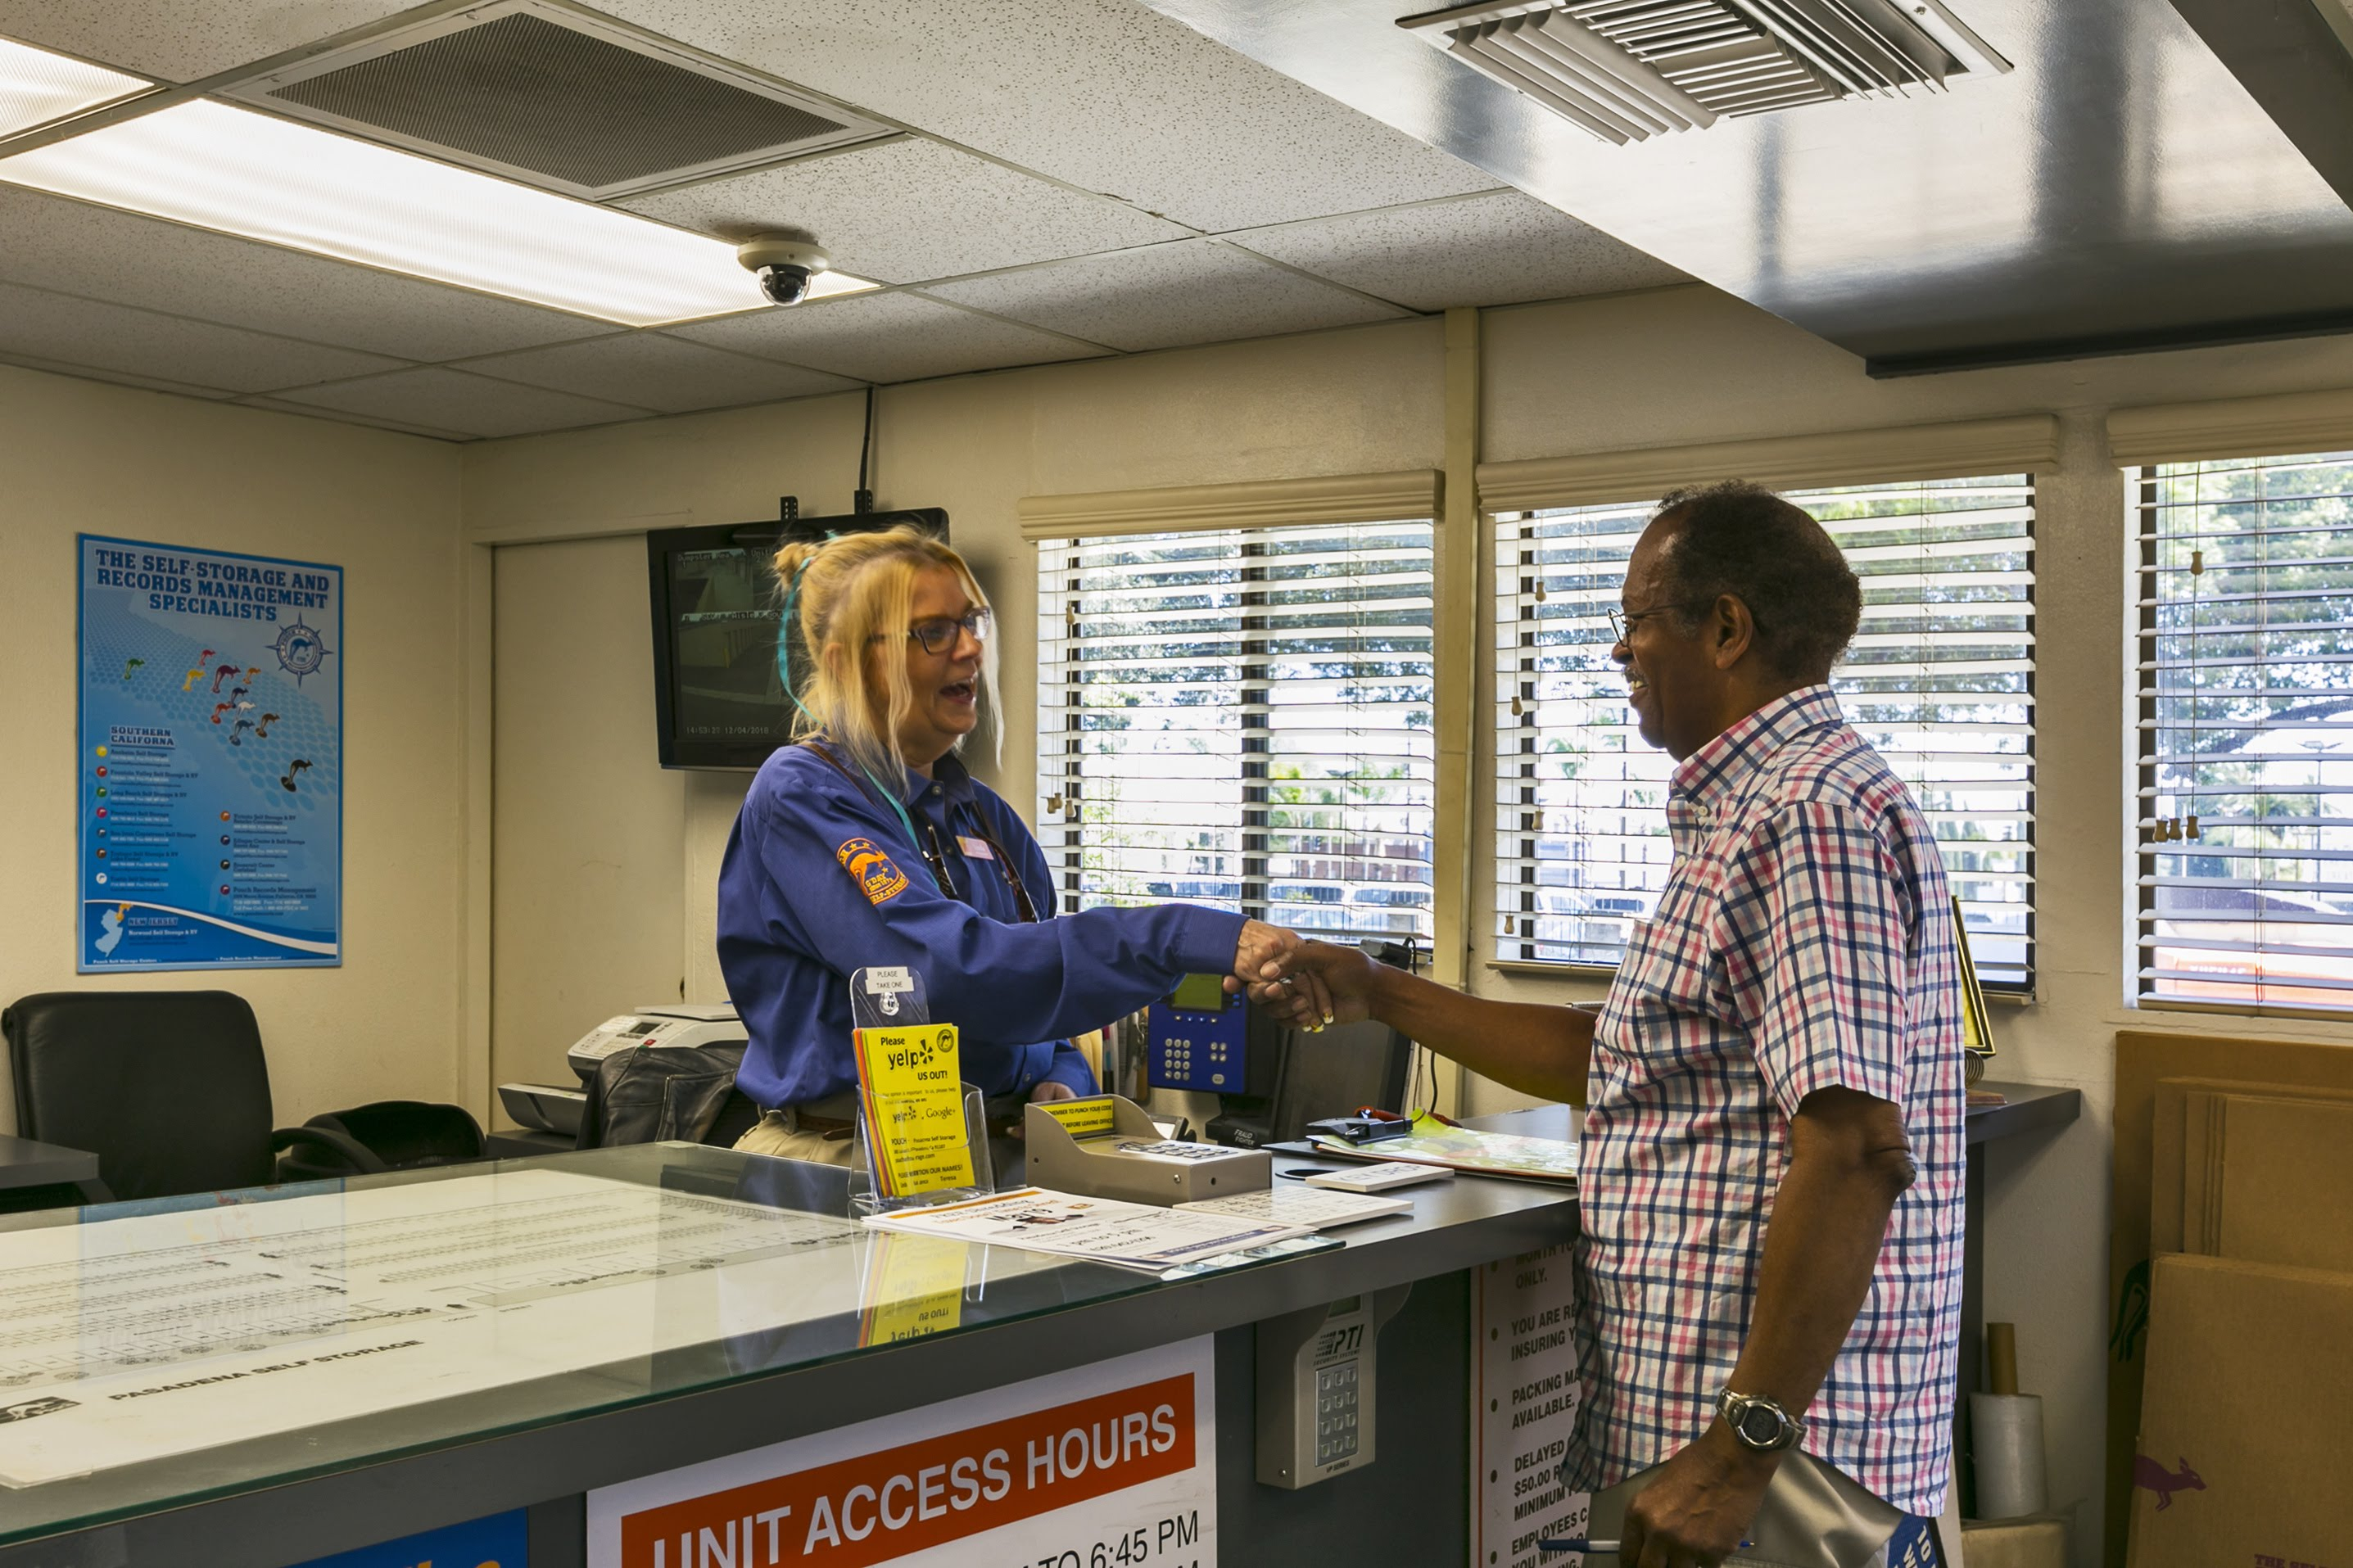 Interior office of storage facility, clerk shaking hands with customer